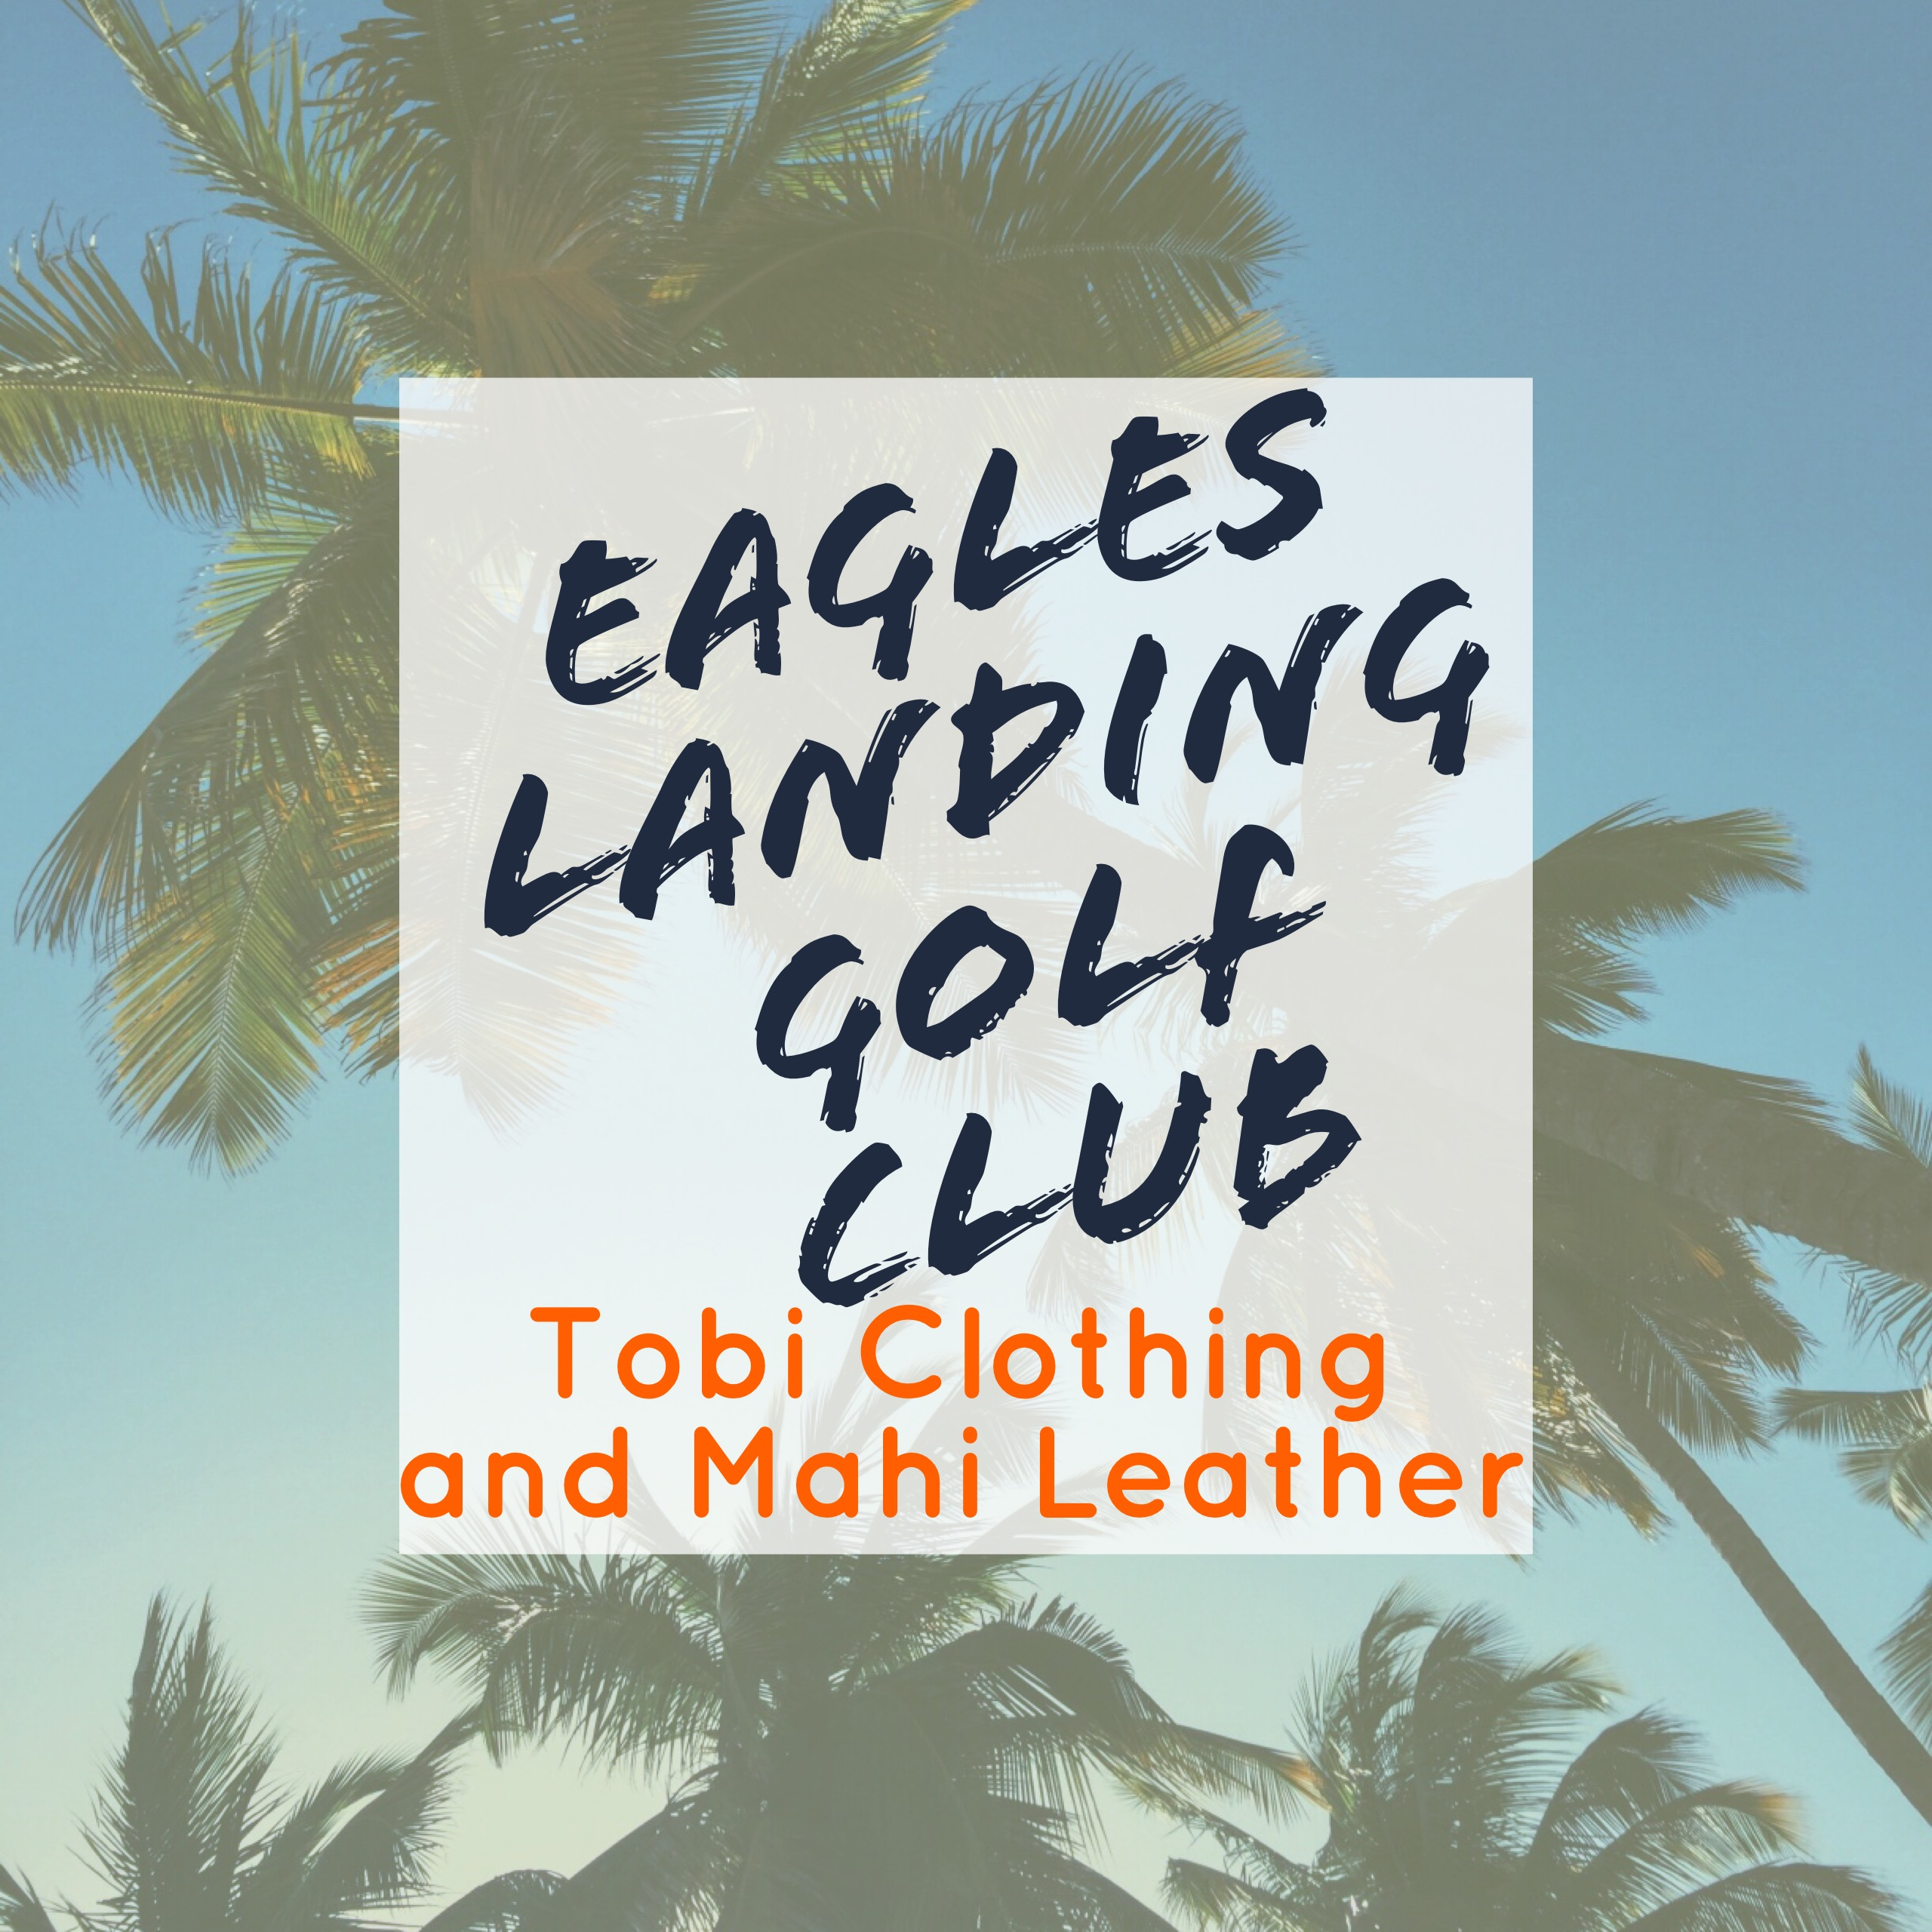 Eagles Landing Golf Club